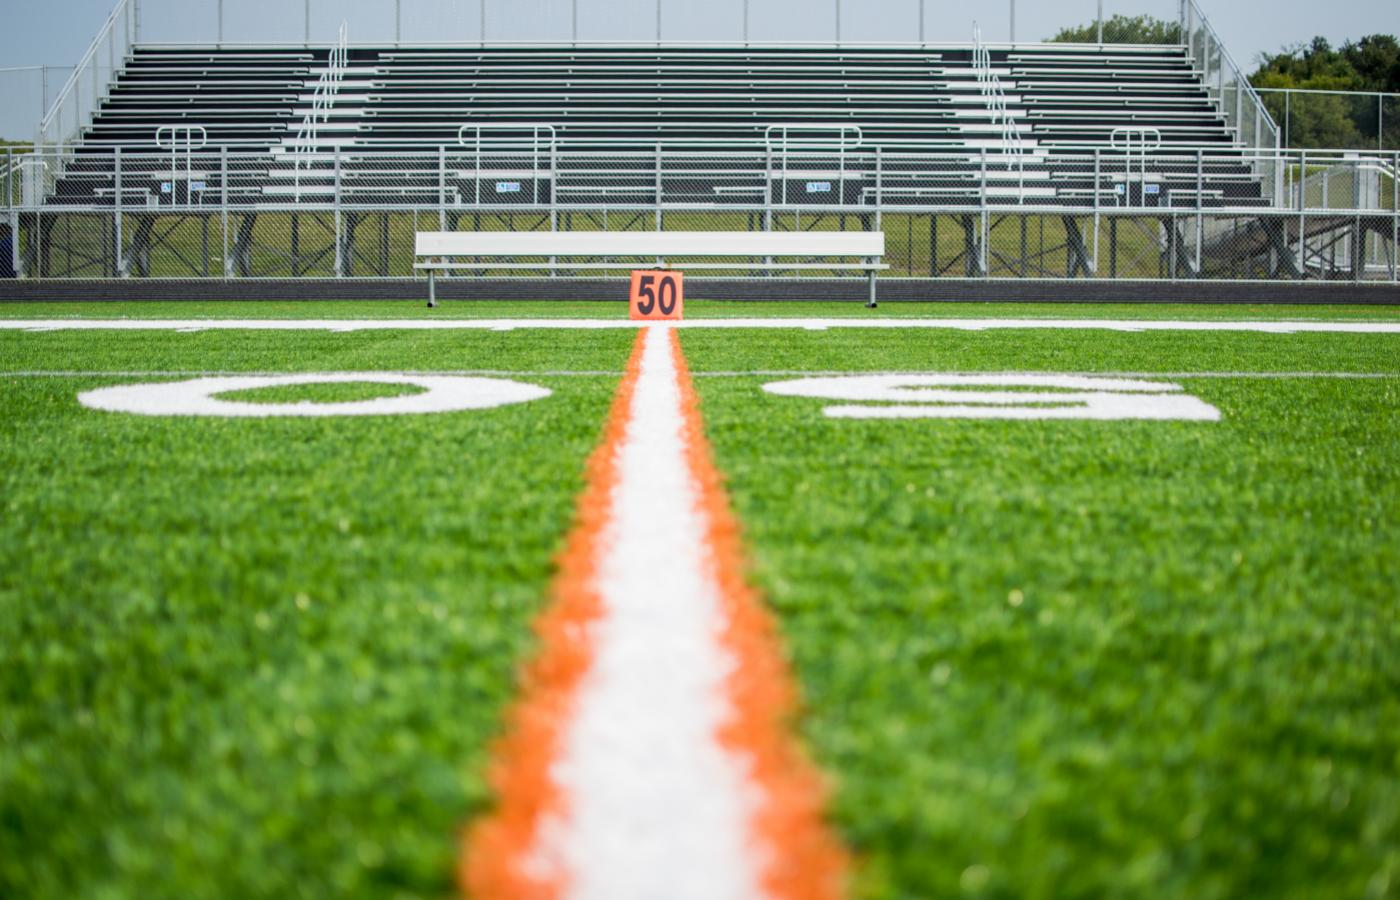 Delano High School Synthetic Turf Fields - 7